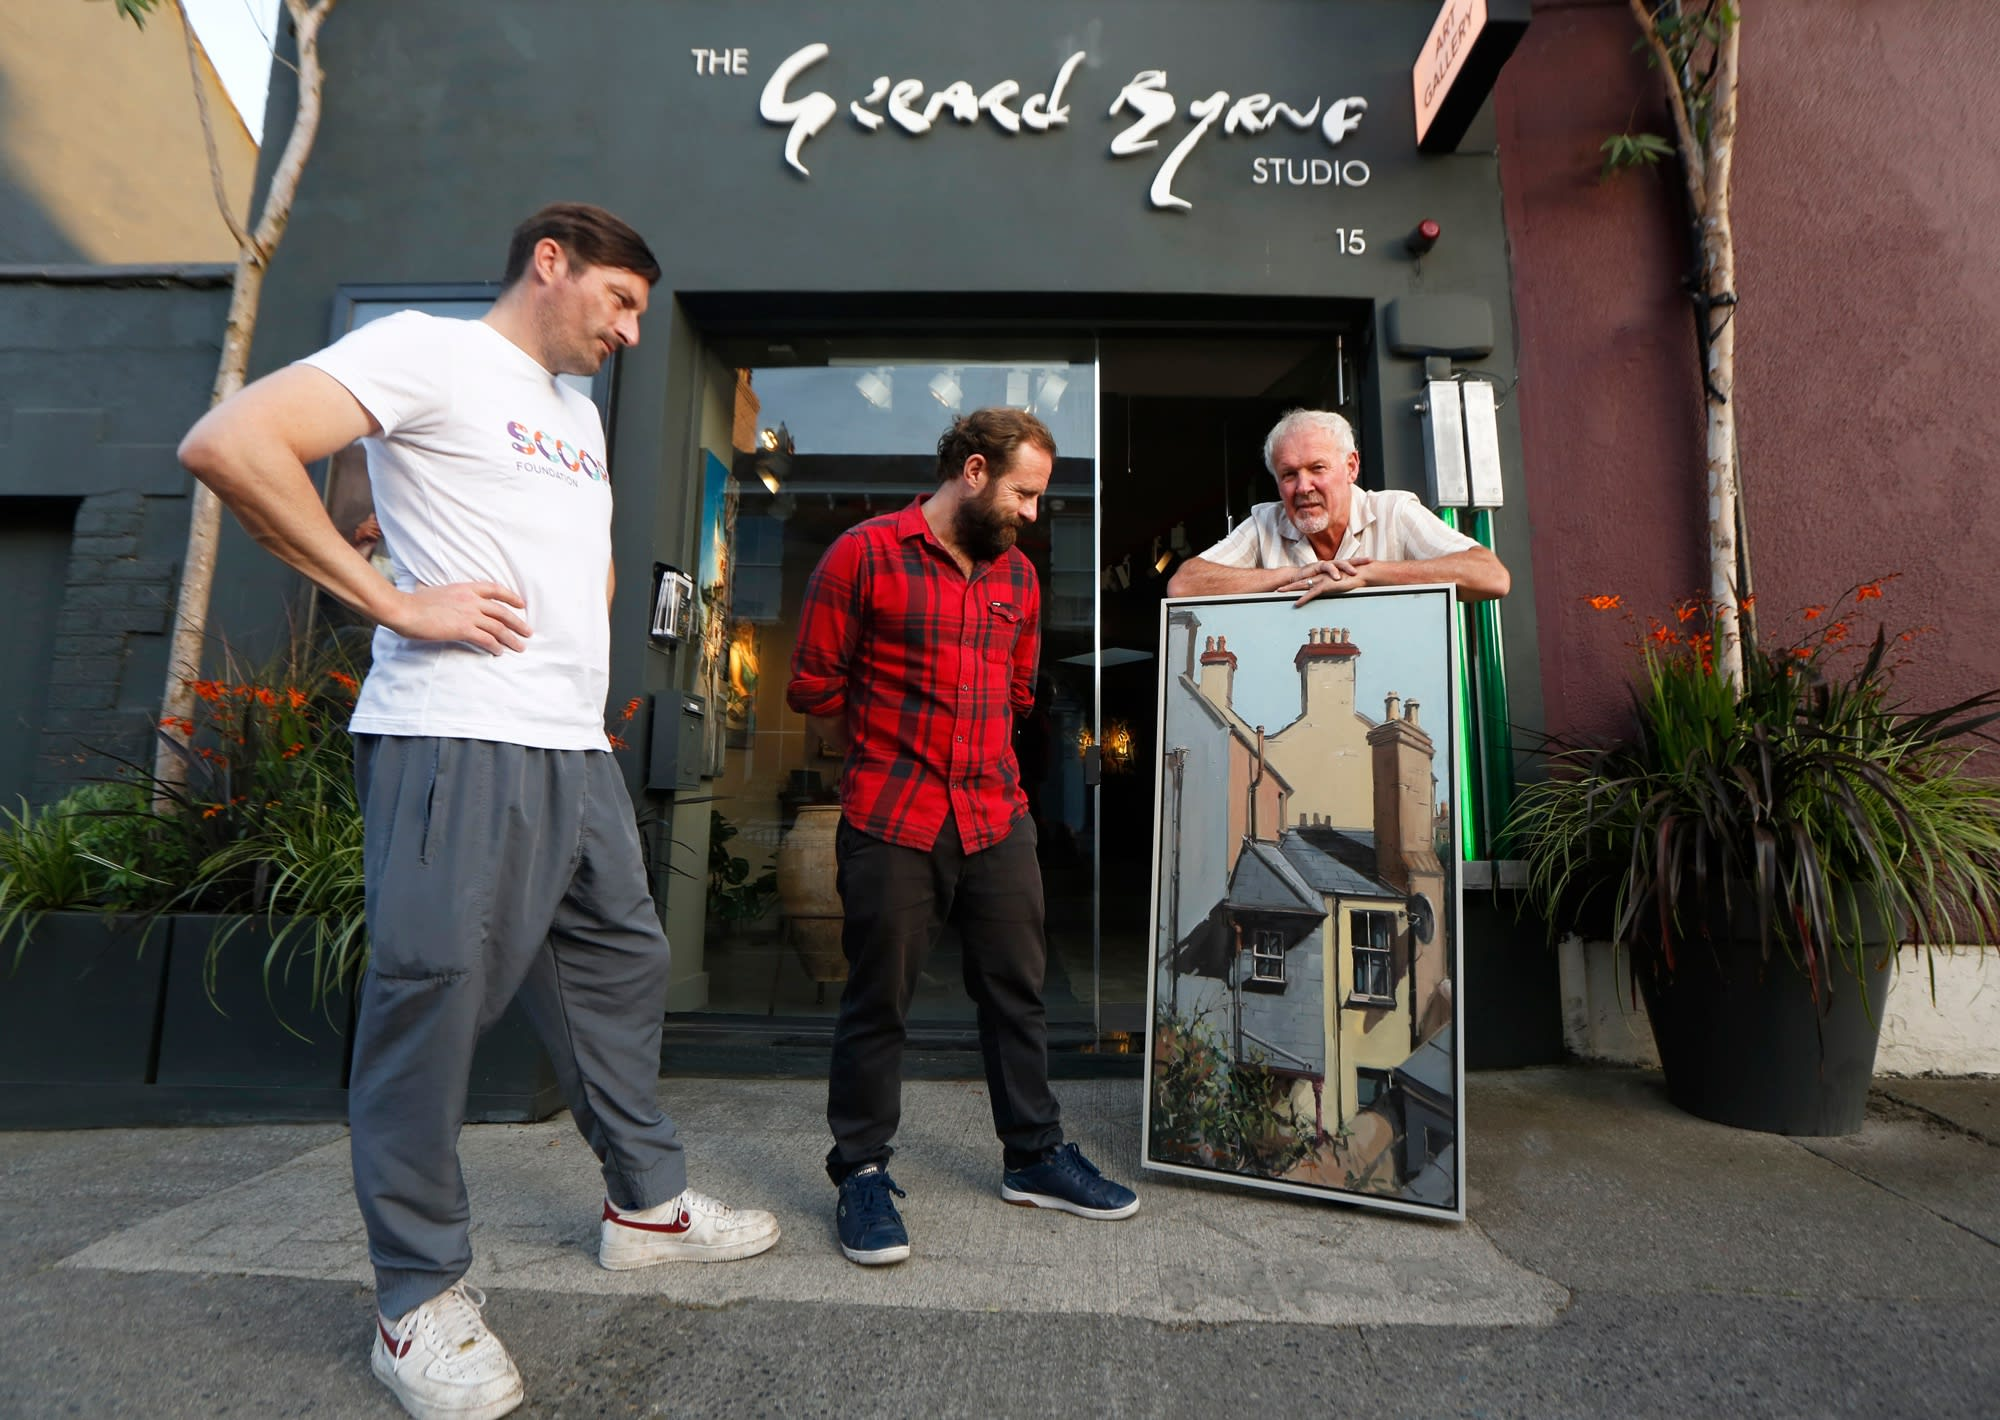 SCOOP_Foundation_Fundraiser_Gerard_Byrne_The_Artist_On_the_Roof_oil_painting_art_raffle